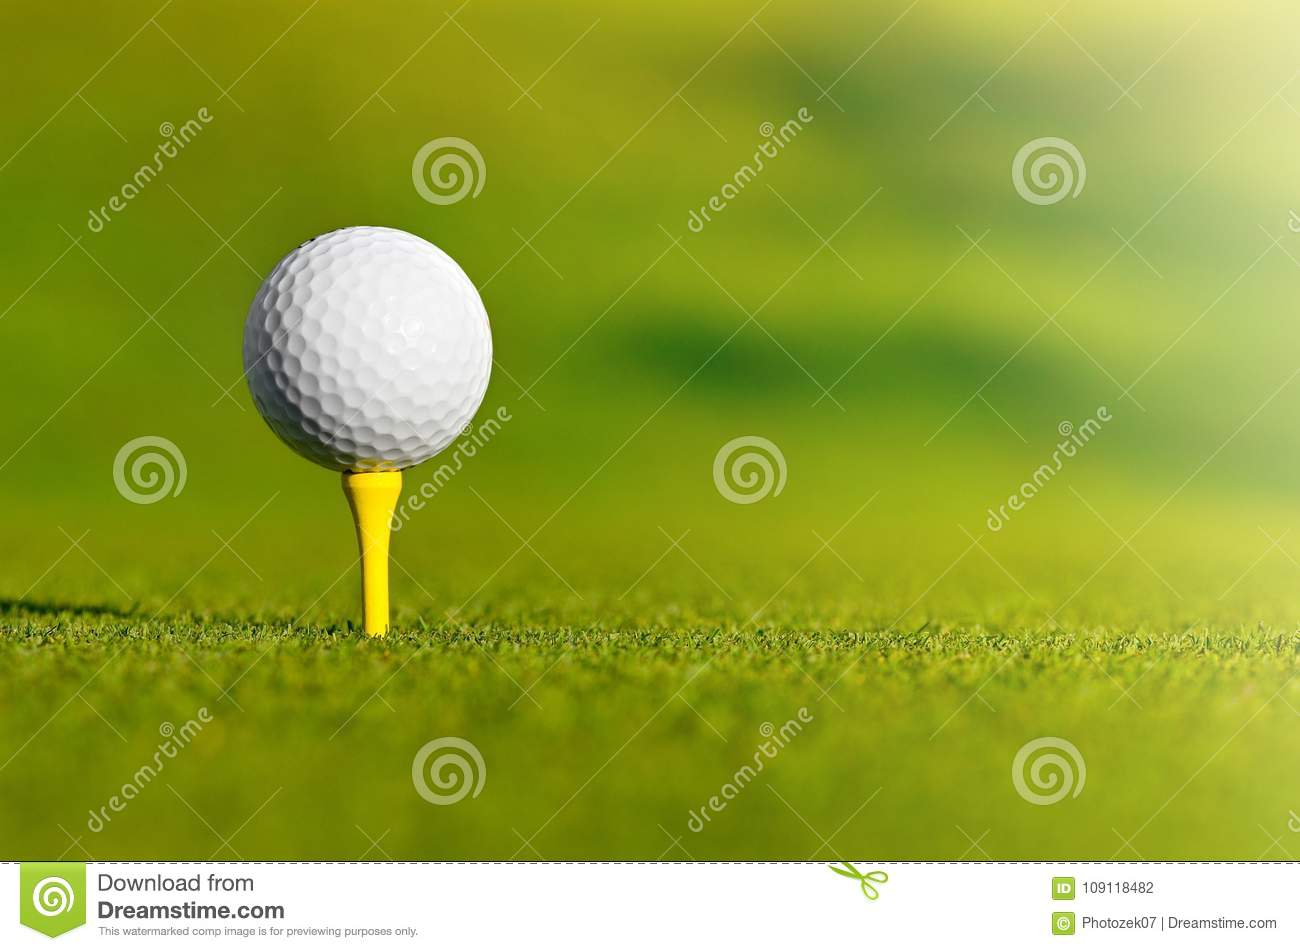 Let`s golf today!